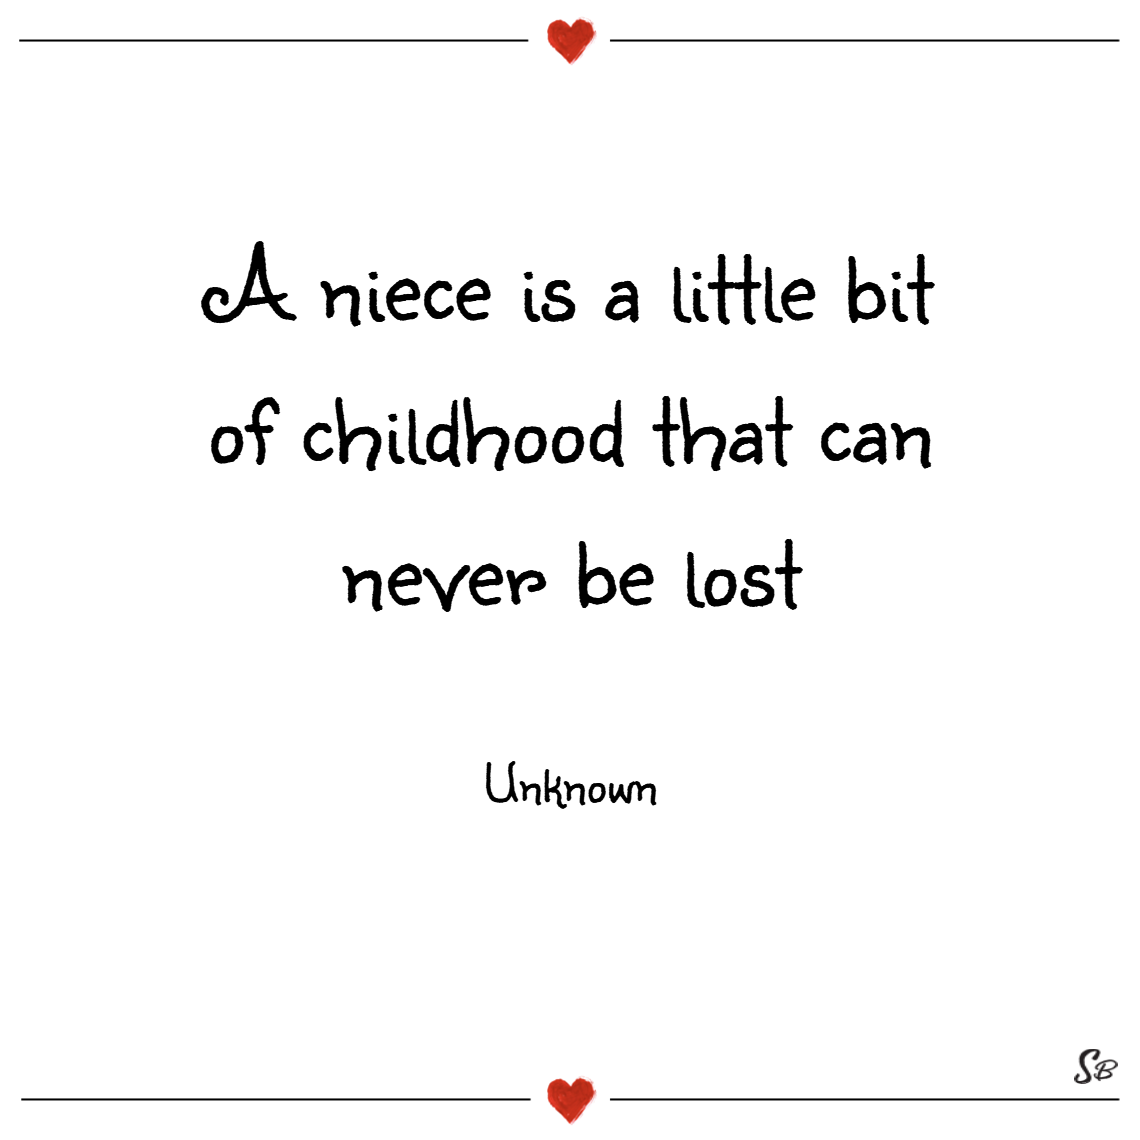 A niece is a little bit of childhood that can never be lost. – unknown